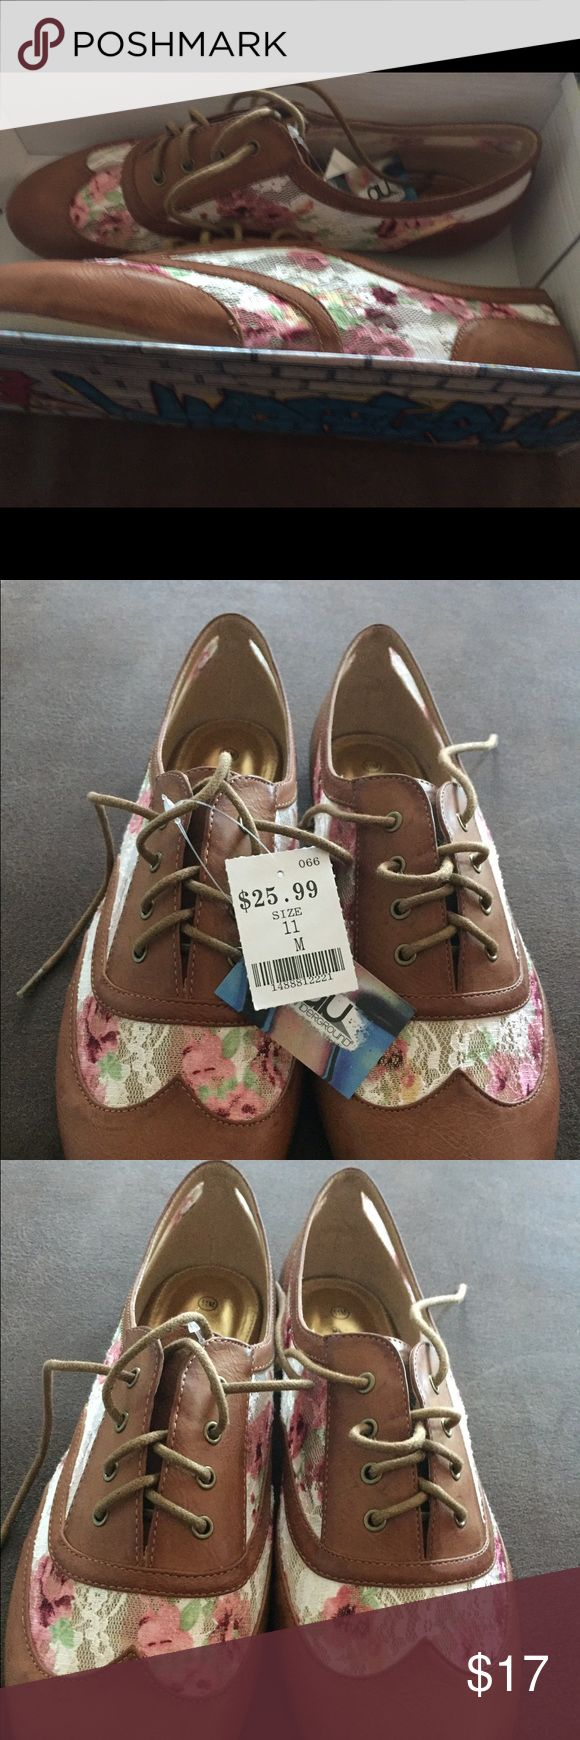 NWT size 11 lace shoes Tan leather and lace flats with pink, white and green flowers. Brand new and never worn. Just realized that they really aren't my style air underground Shoes Flats & Loafers